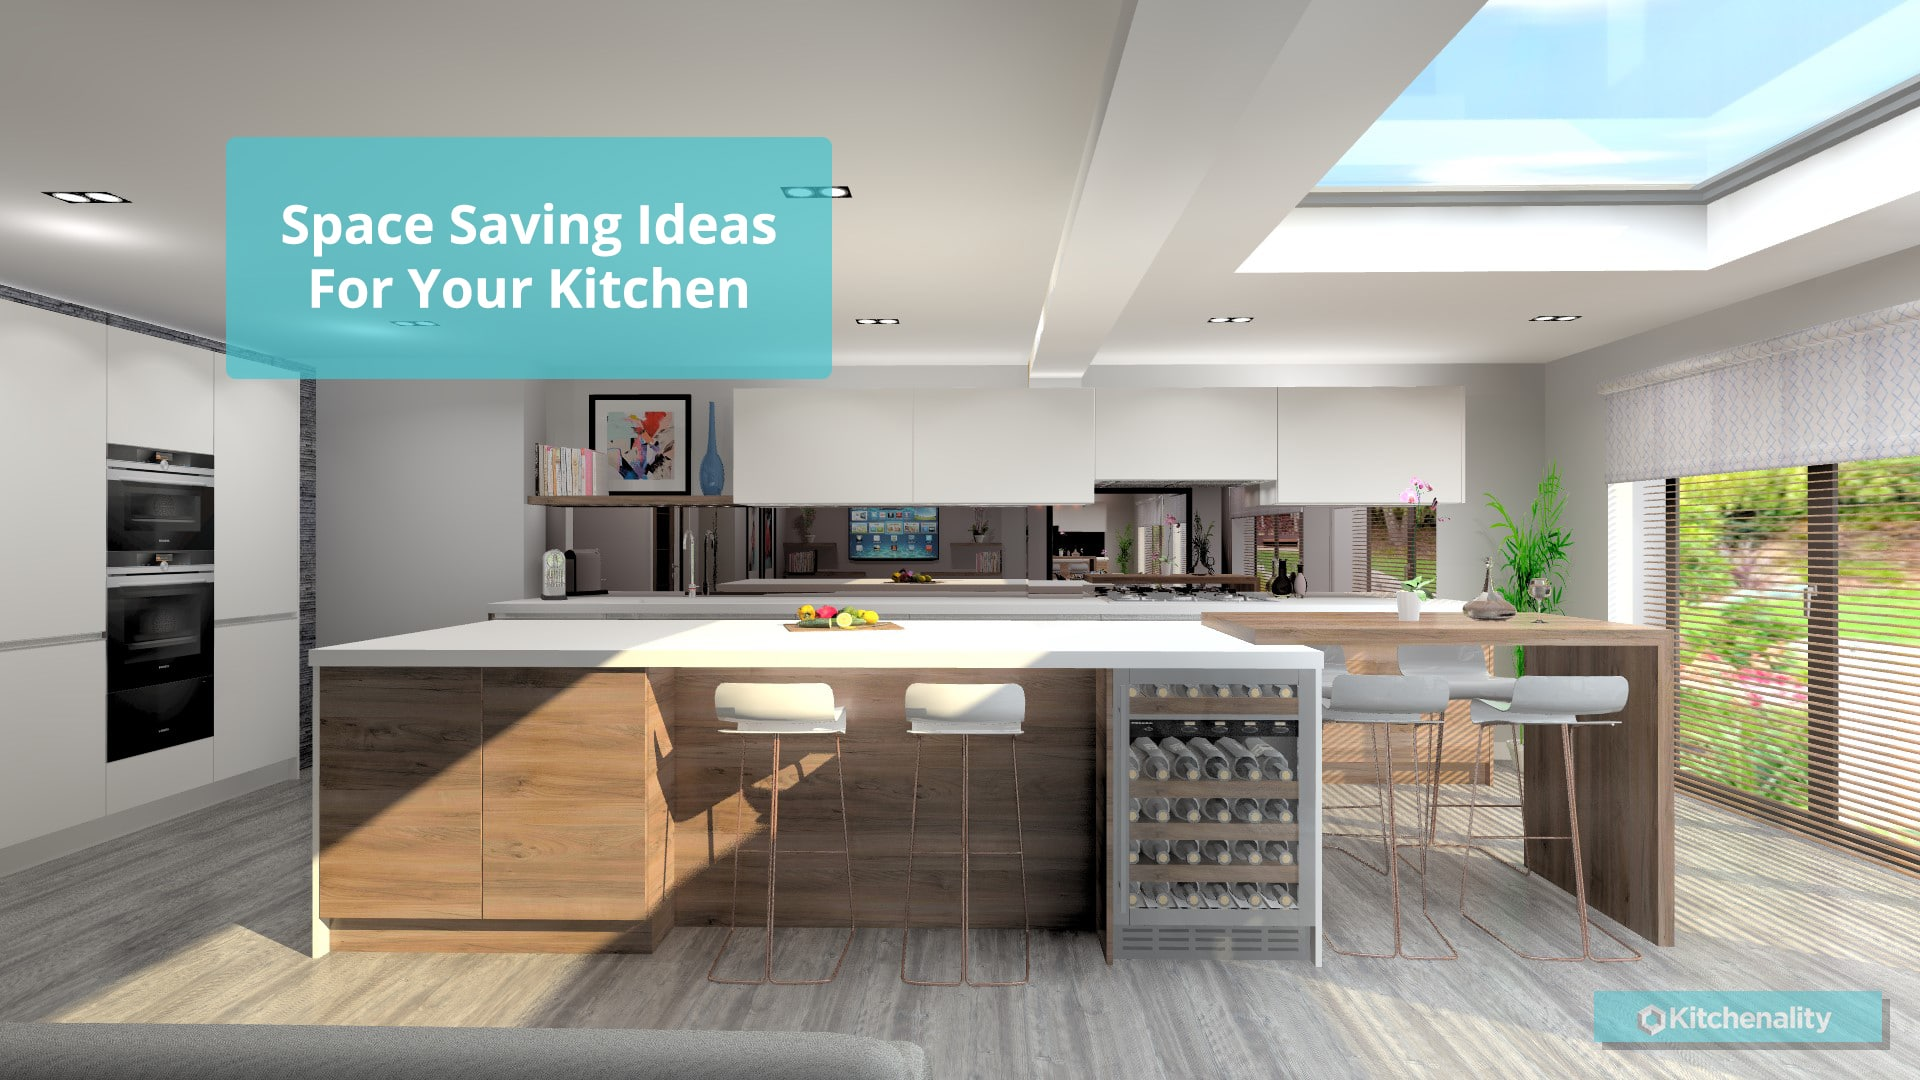 Space Saving Ideas For Your Maccesfield Kitchen Kitchenality